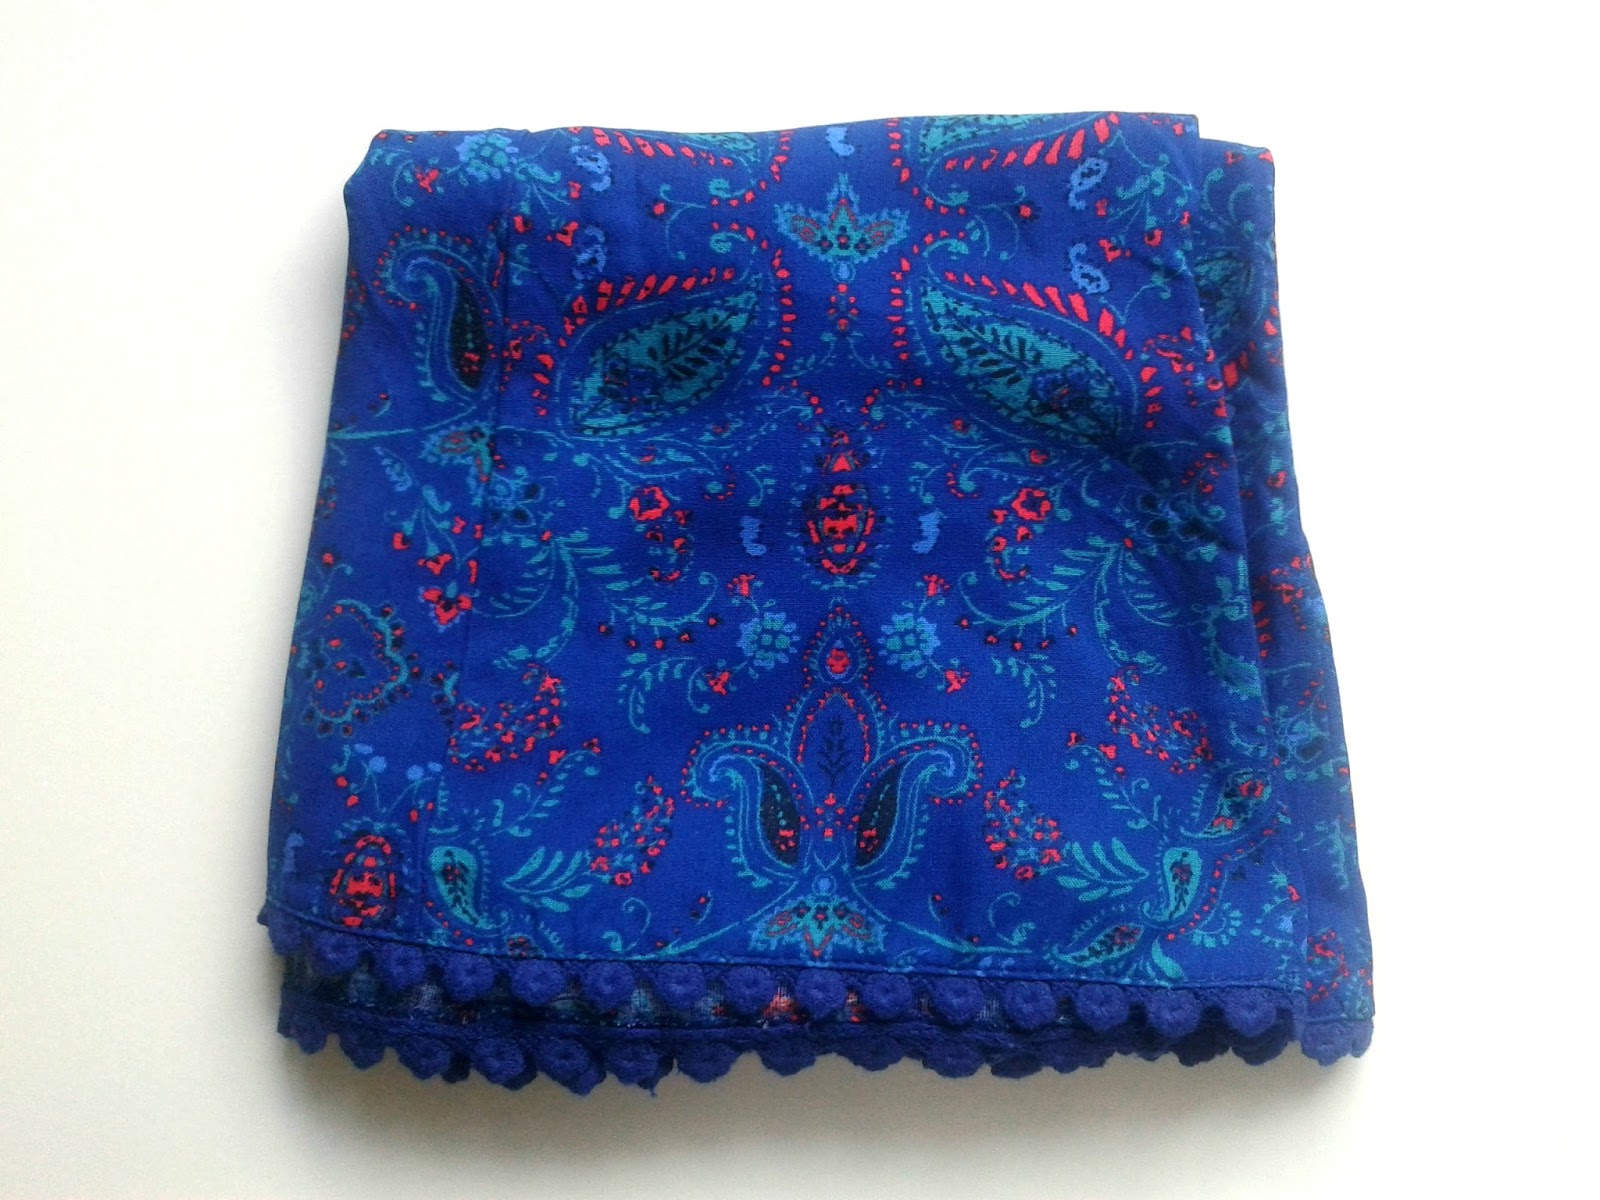 New Look Blue Paisley Print Crochet Hem High Waisted Shorts Folded Review Outfit